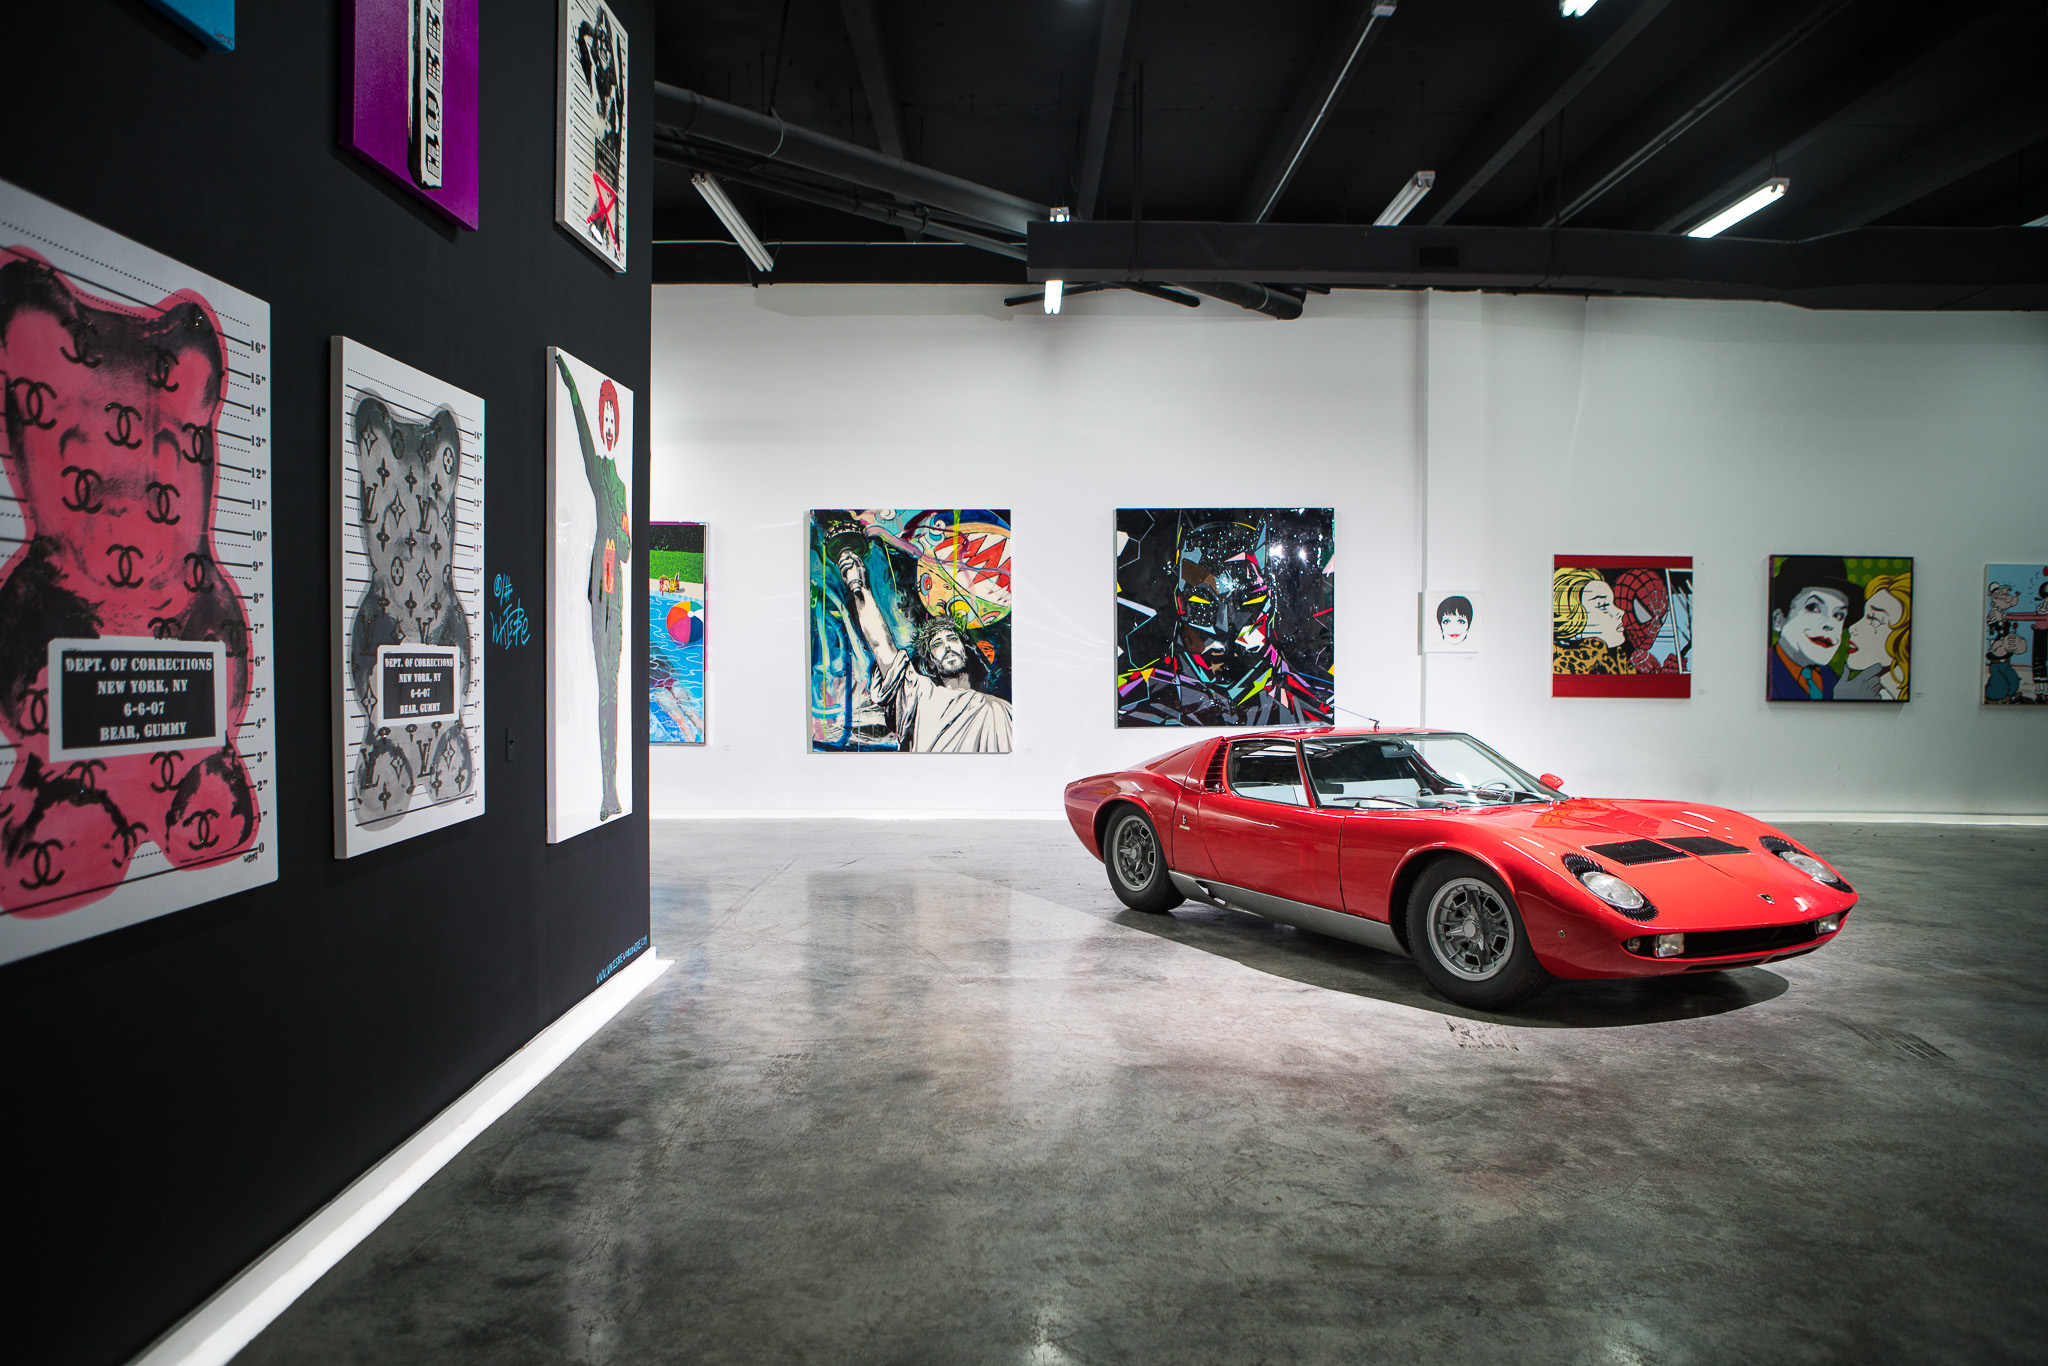 Super Cars For Sale >> 1967 Lamborghini Miura S For Sale Curated Vintage